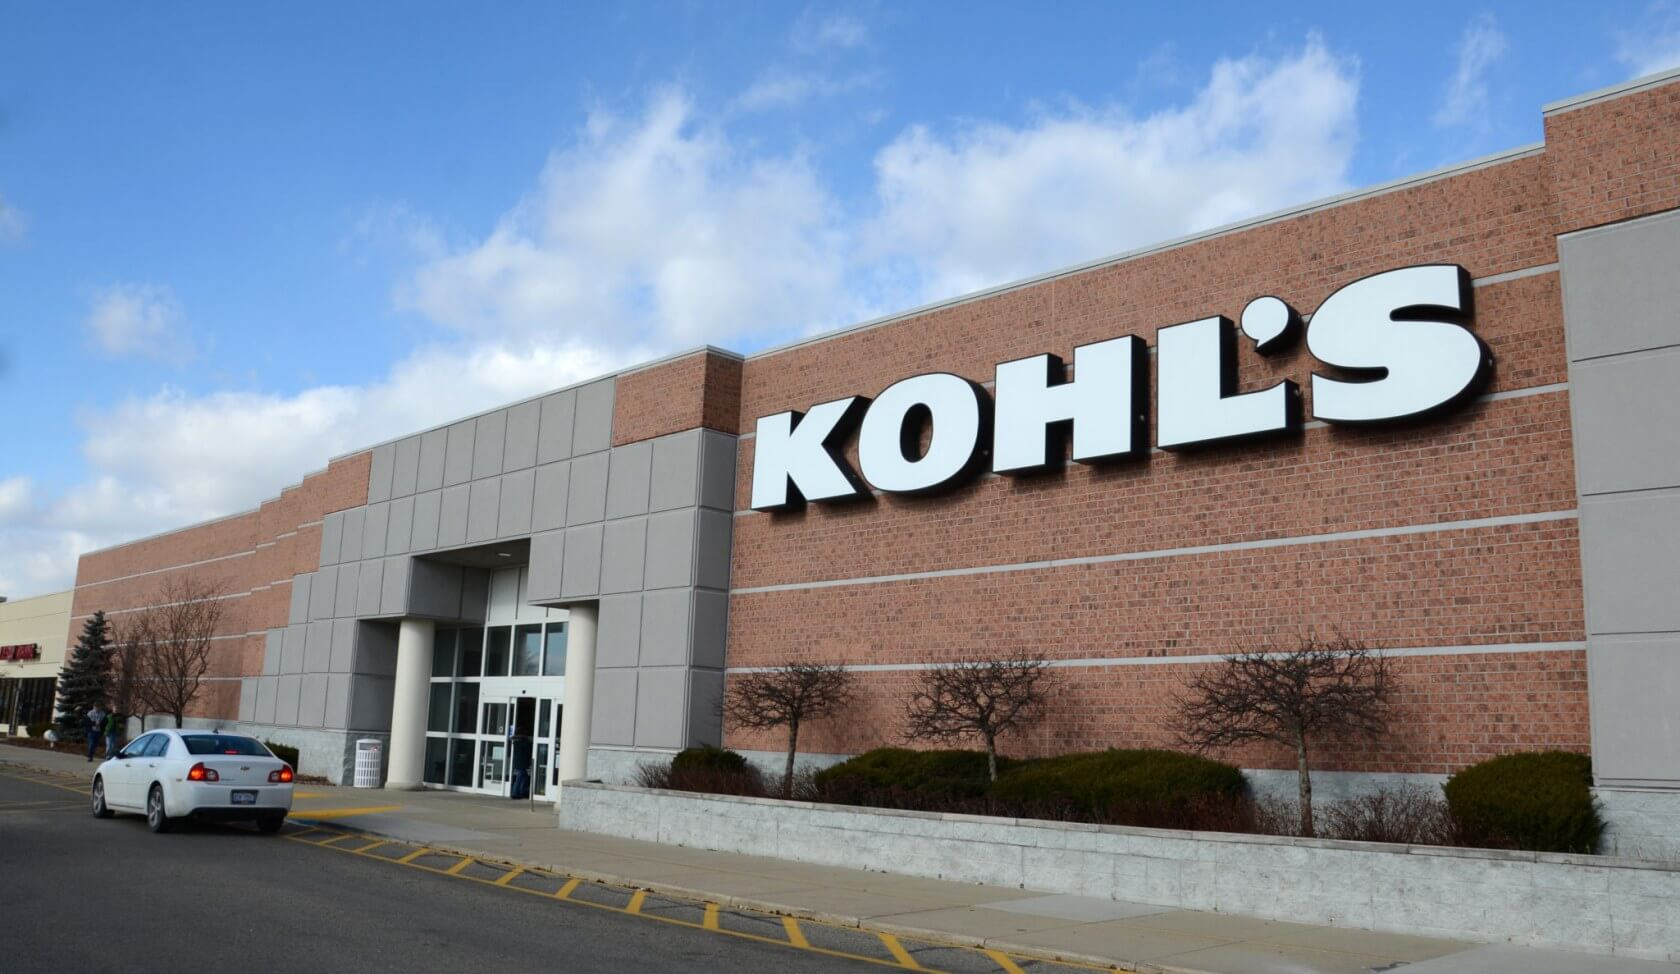 Amazon returns can be made at Kohl's starting July